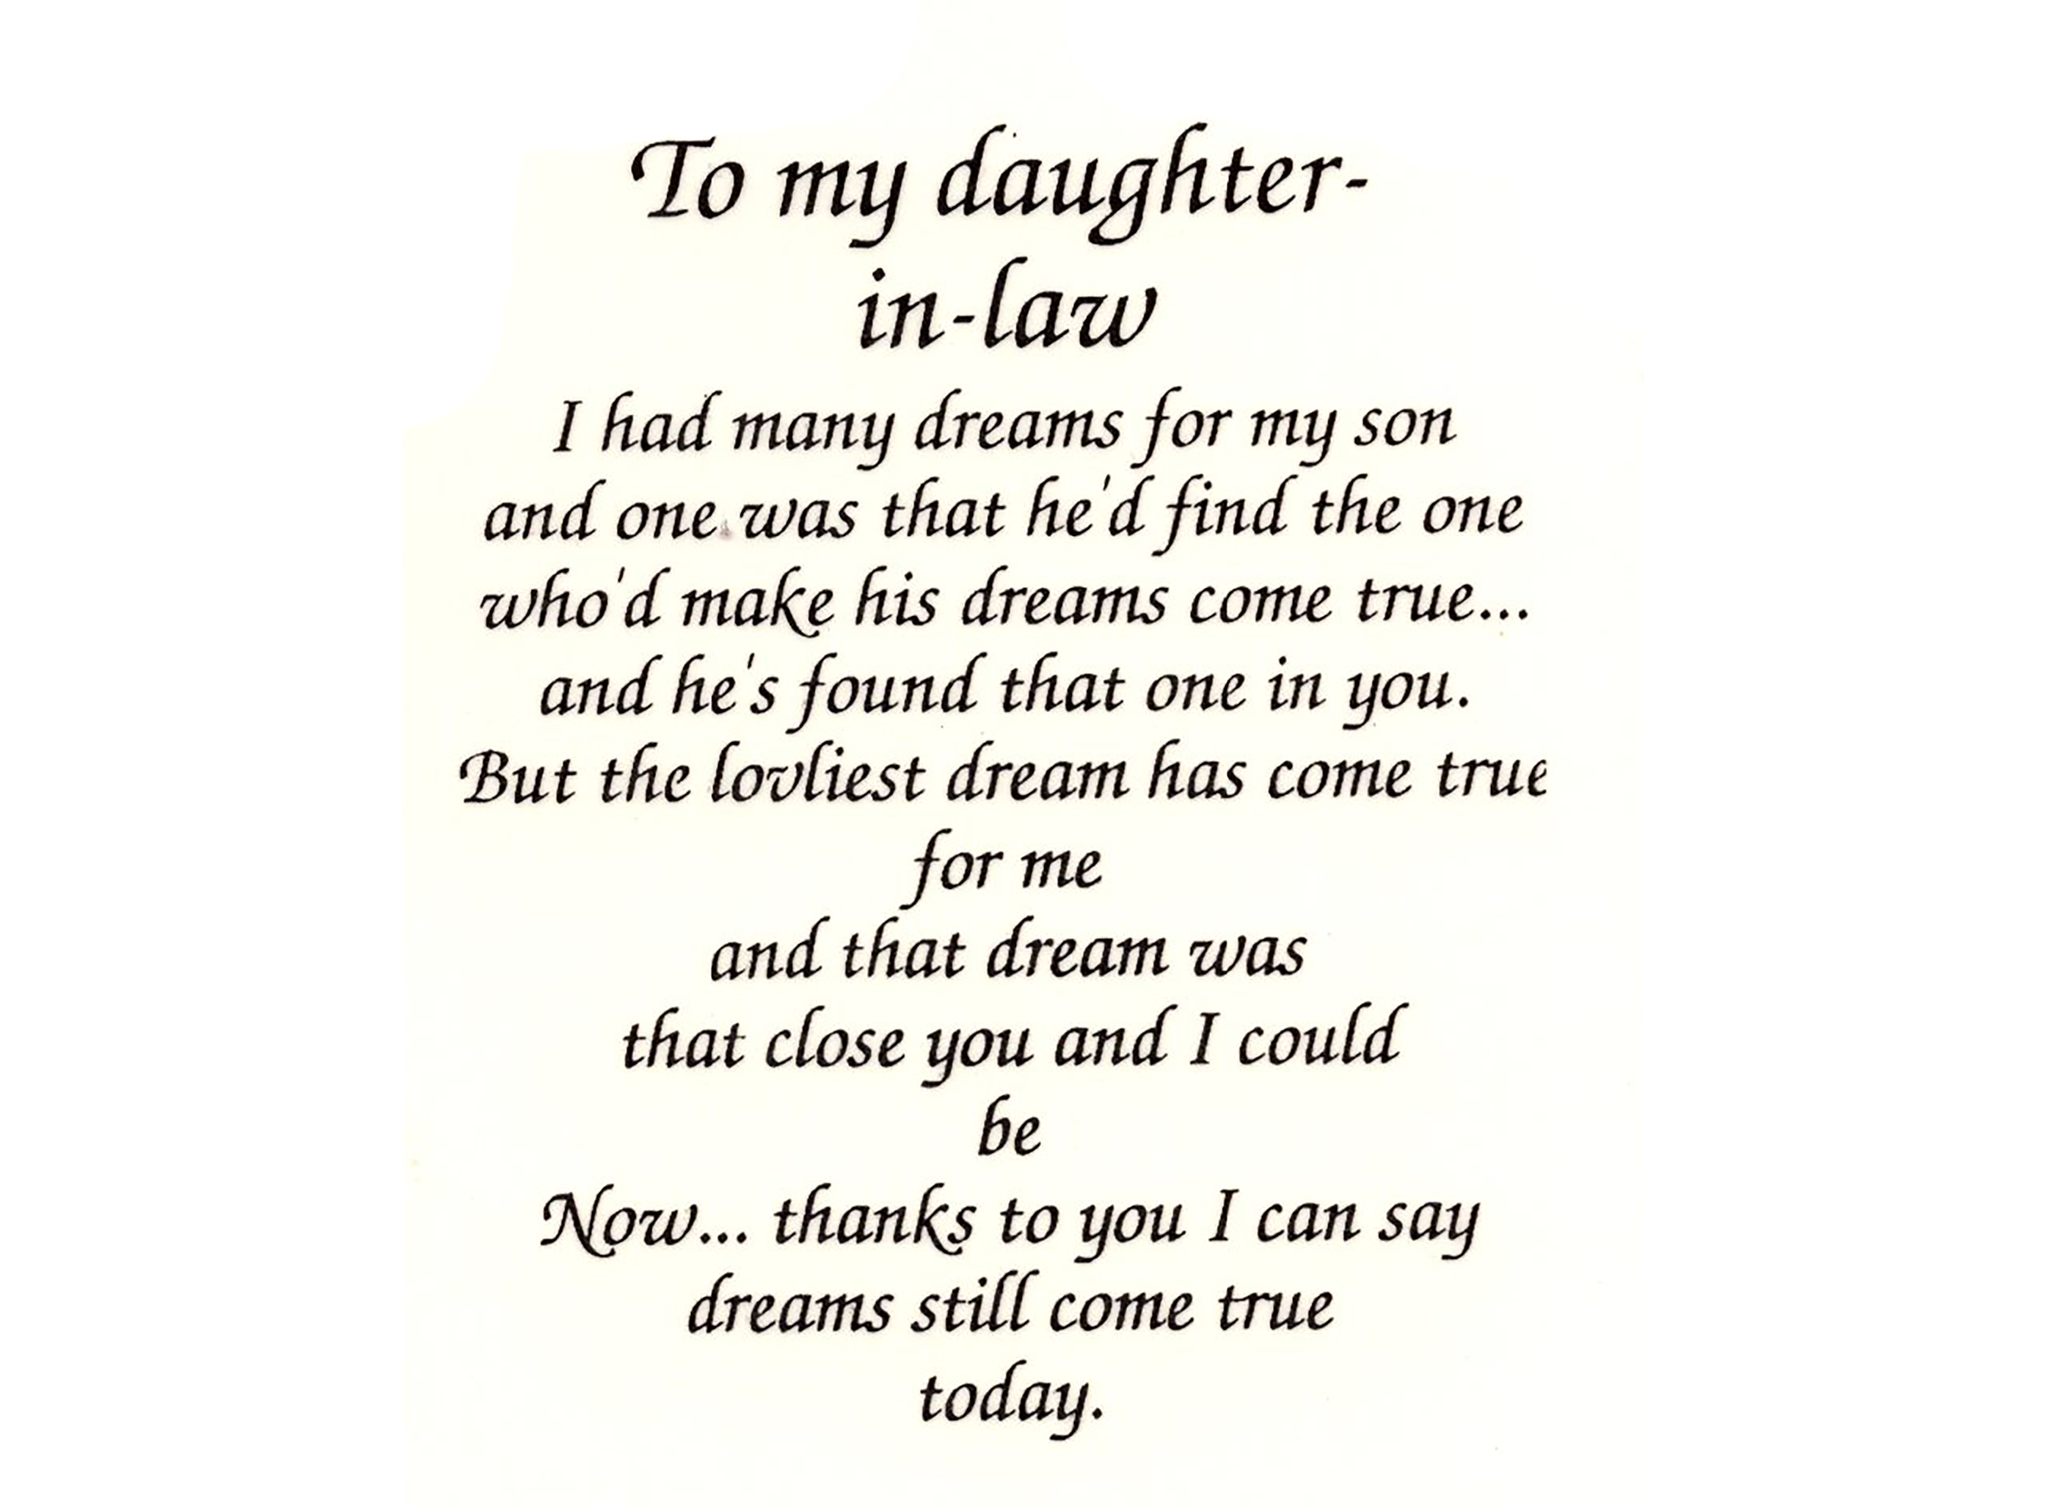 Z 320 To My DaughterinLaw Daughter in law quotes, Law